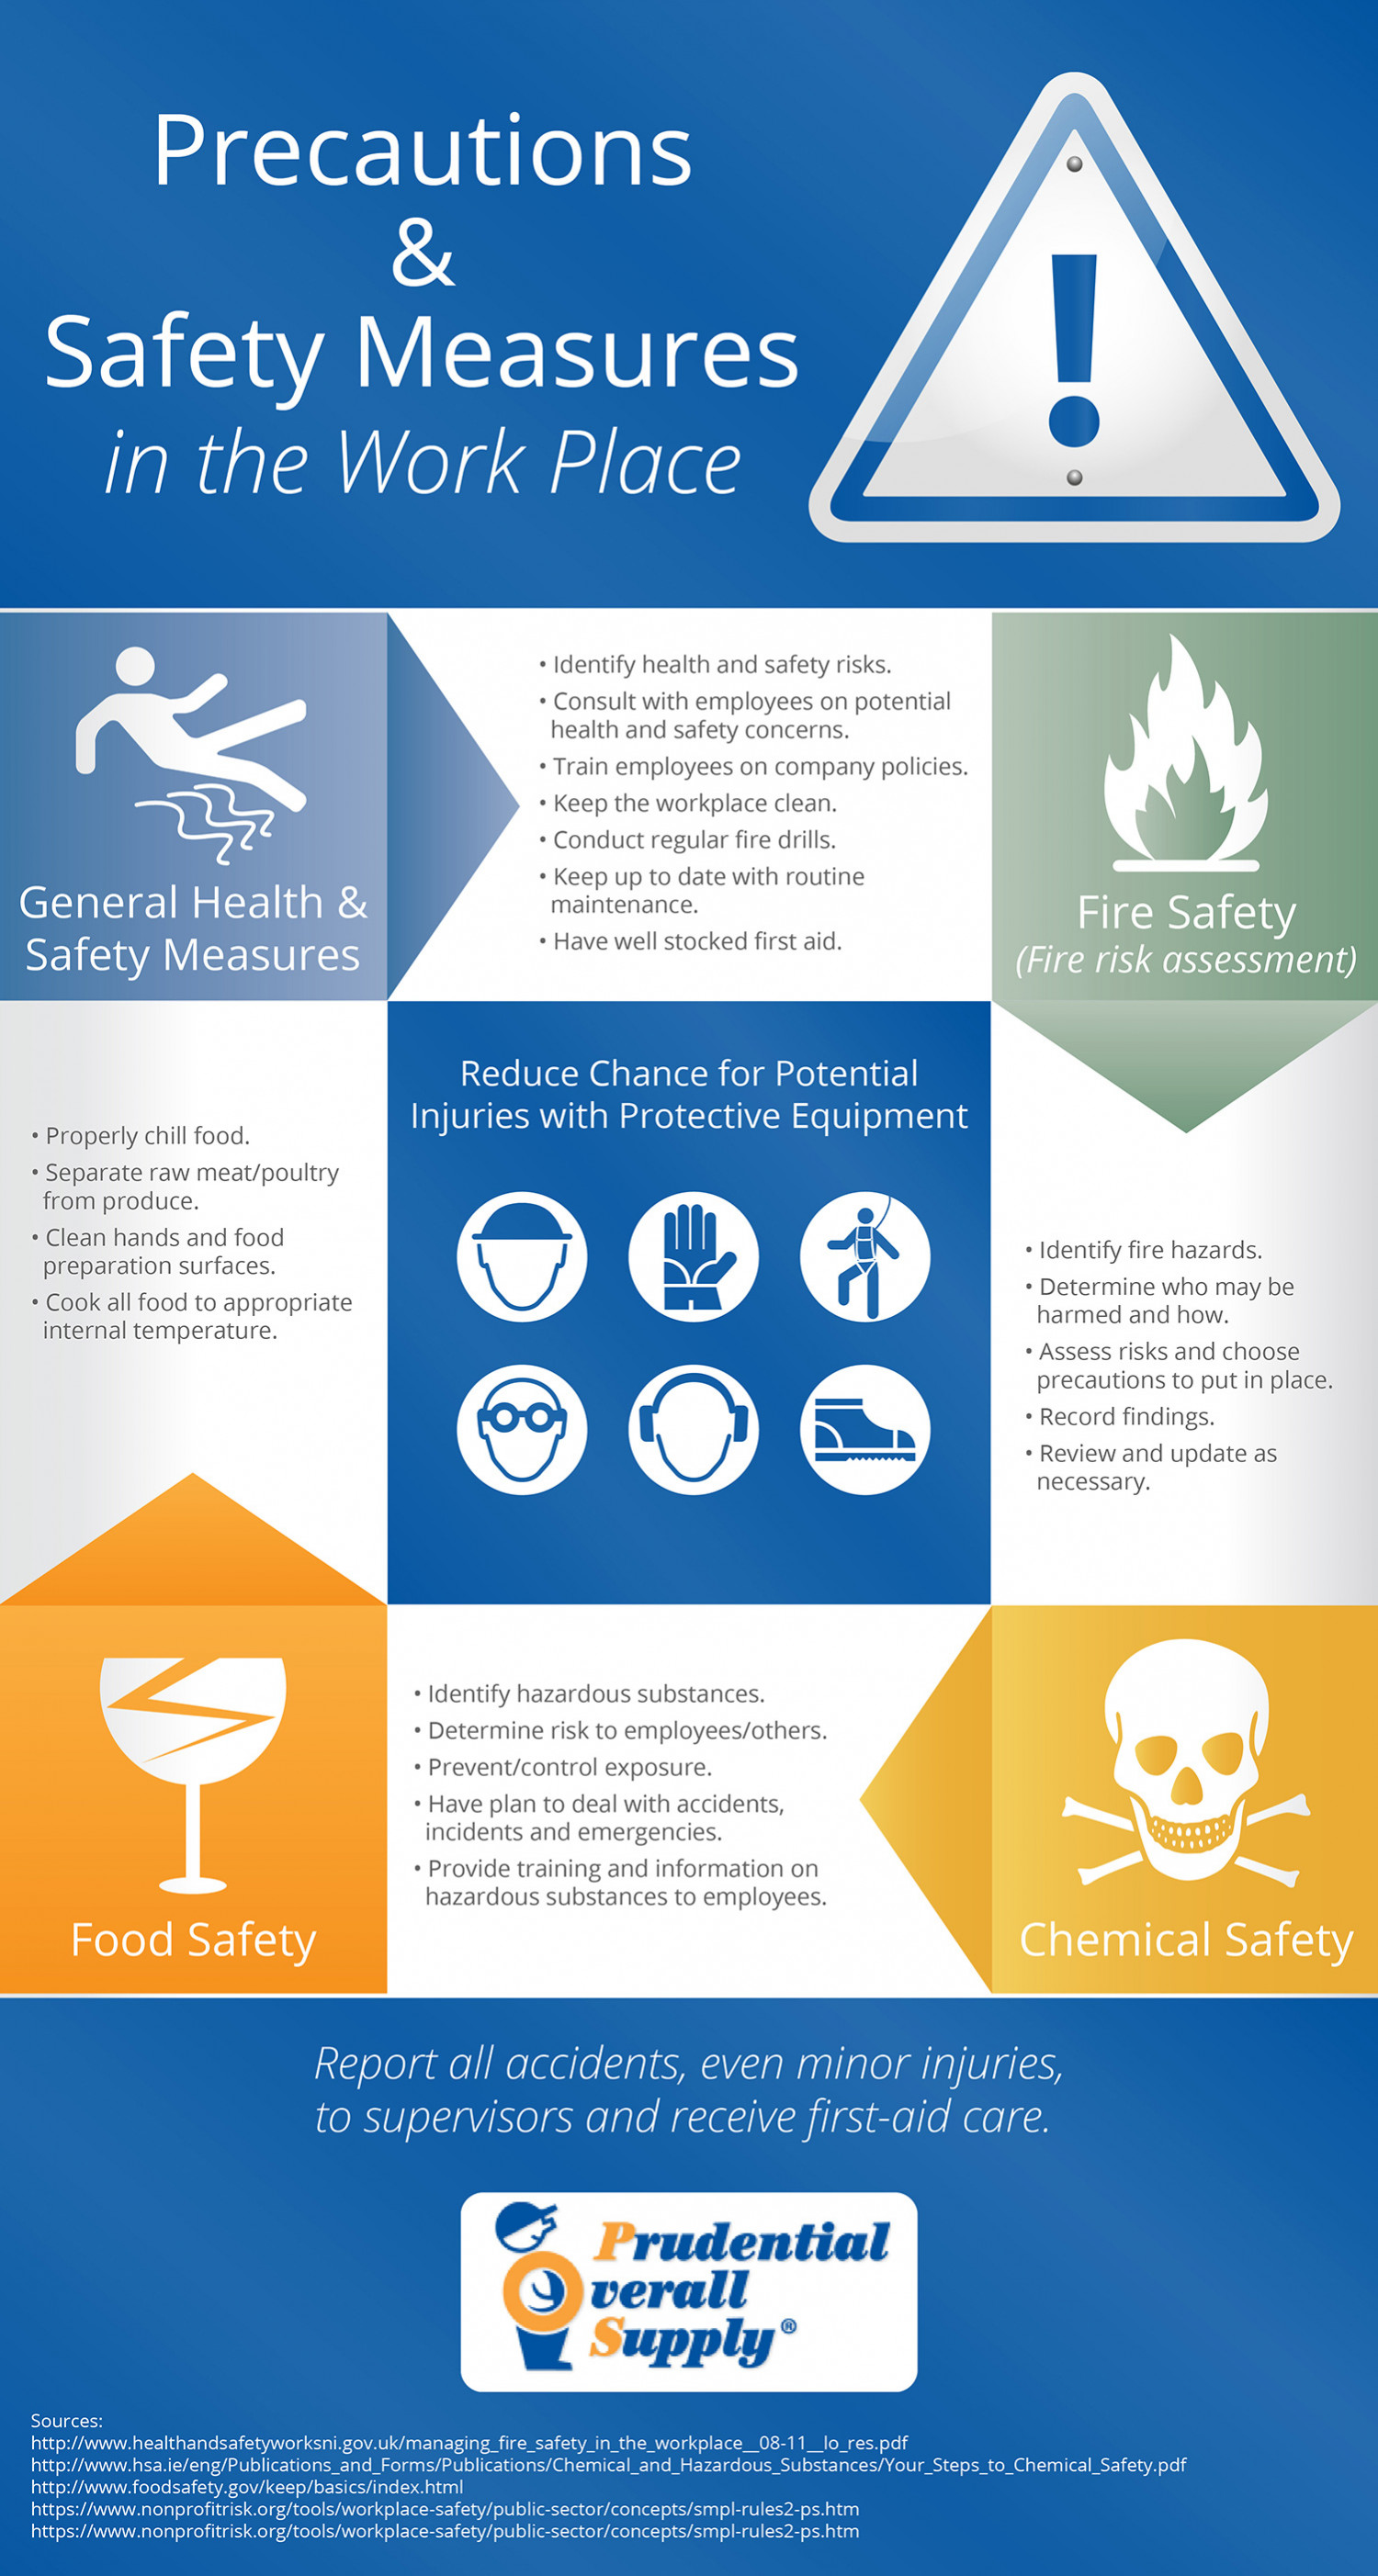 Precautions and Safety Measures in the Workplace Infographic